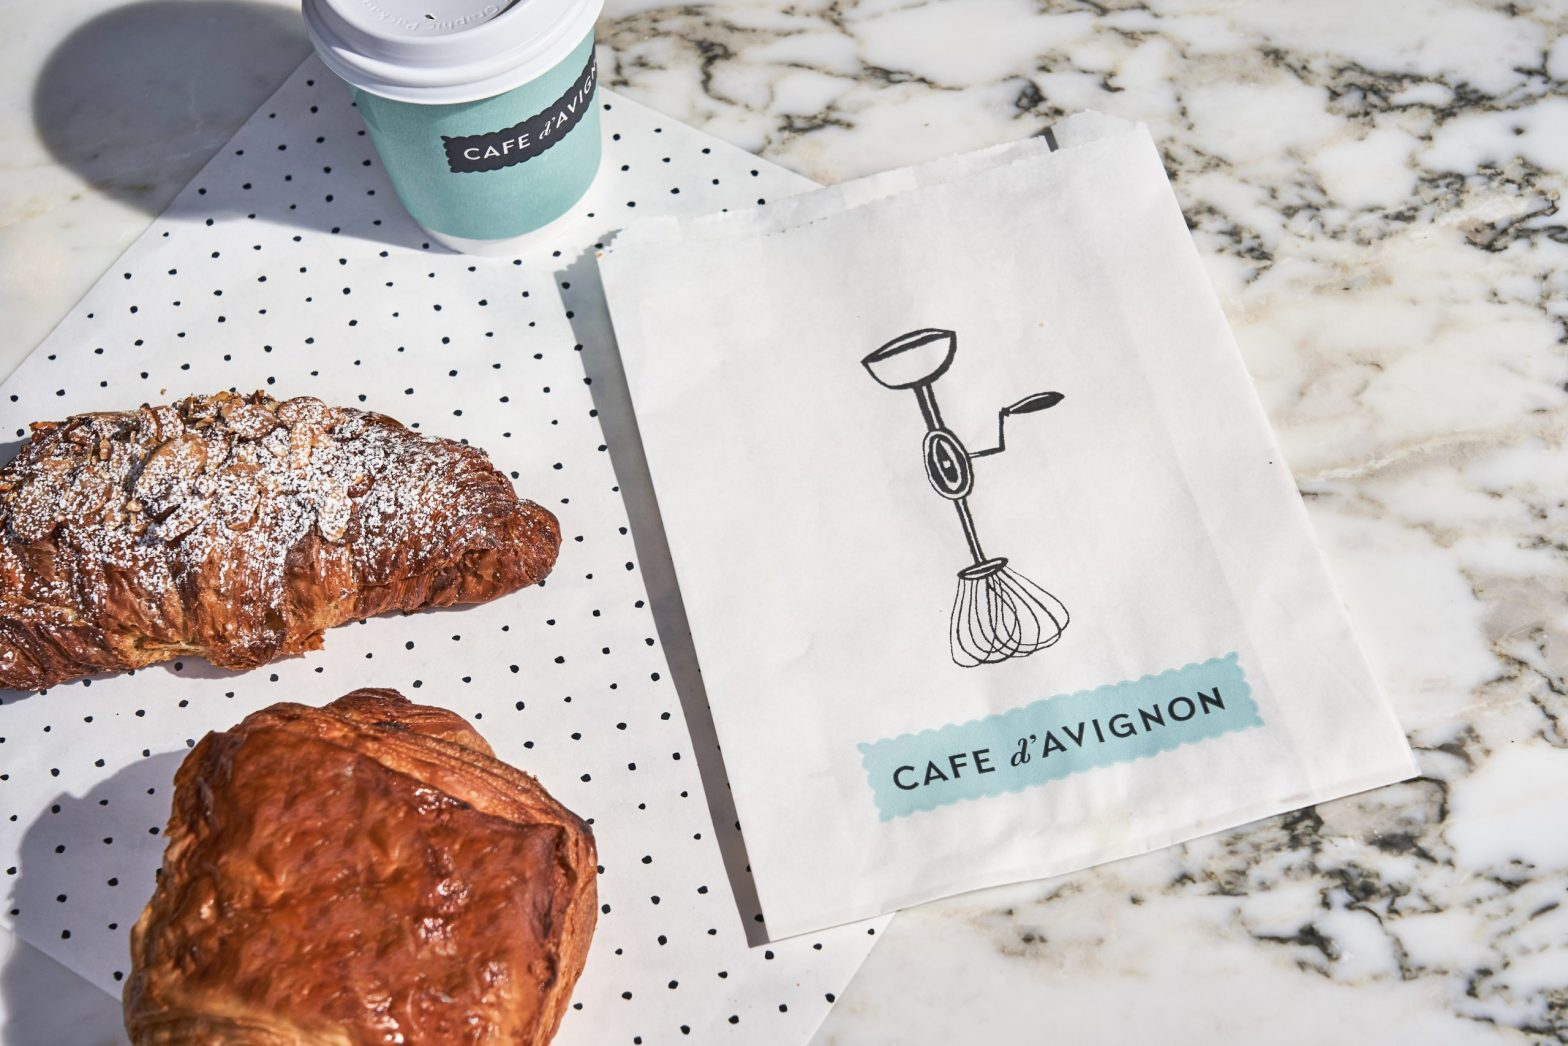 Thumbnail for Mucca Serves Old World Tradition to NYC With Charming Identity for Cafe d'Avignon